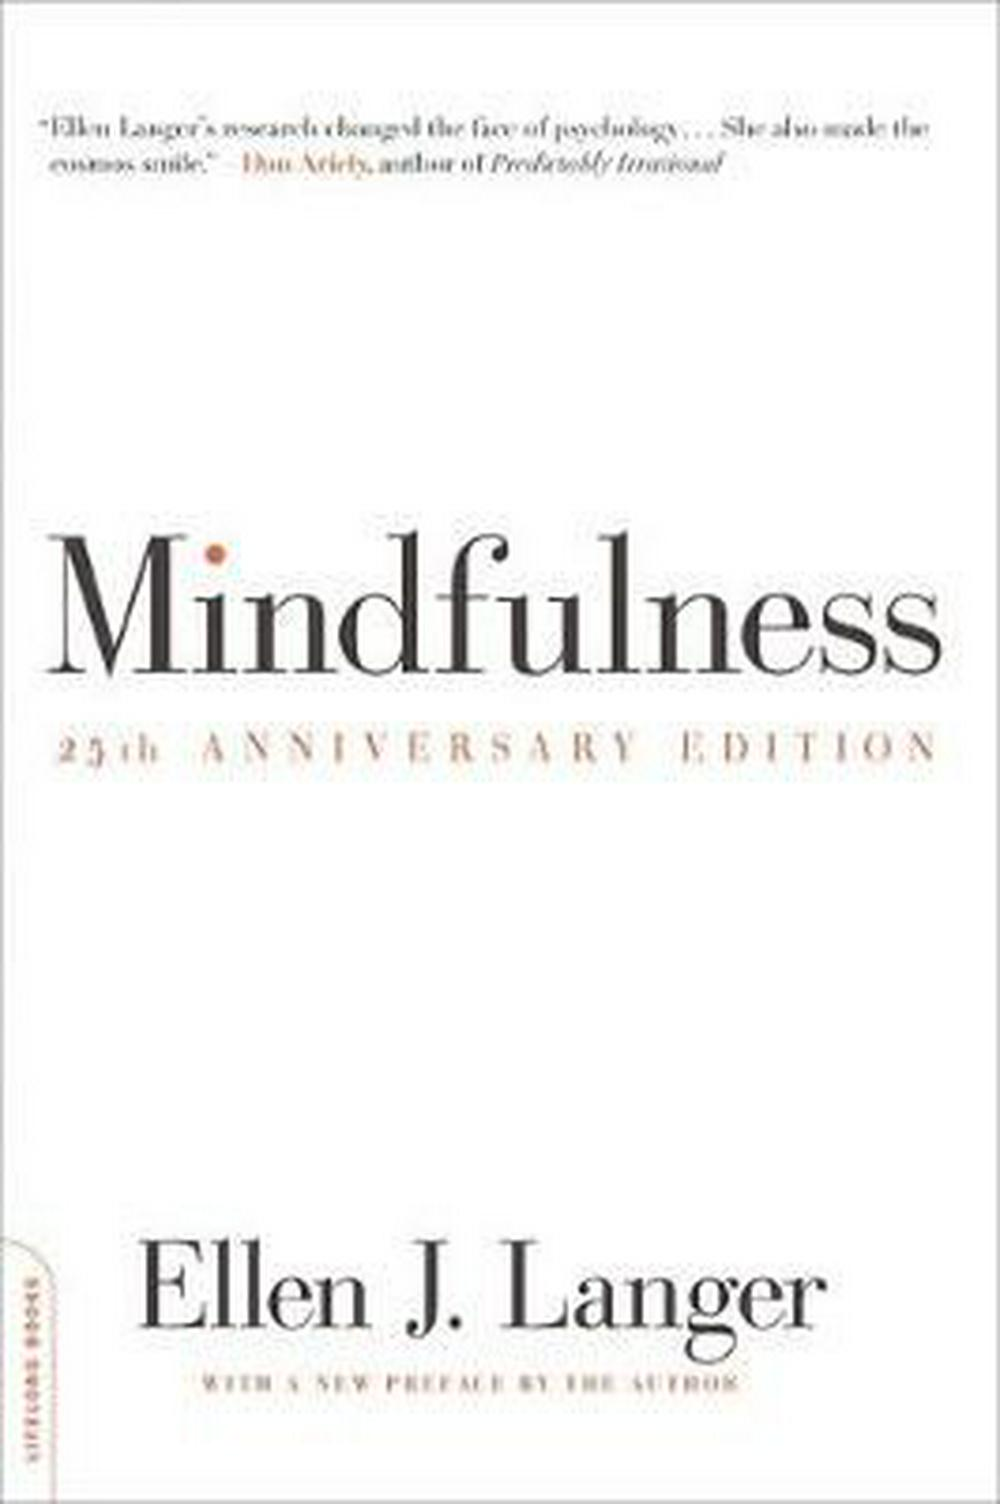 Mindfulness, 25th anniversary edition (Merloyd Lawrence Book)